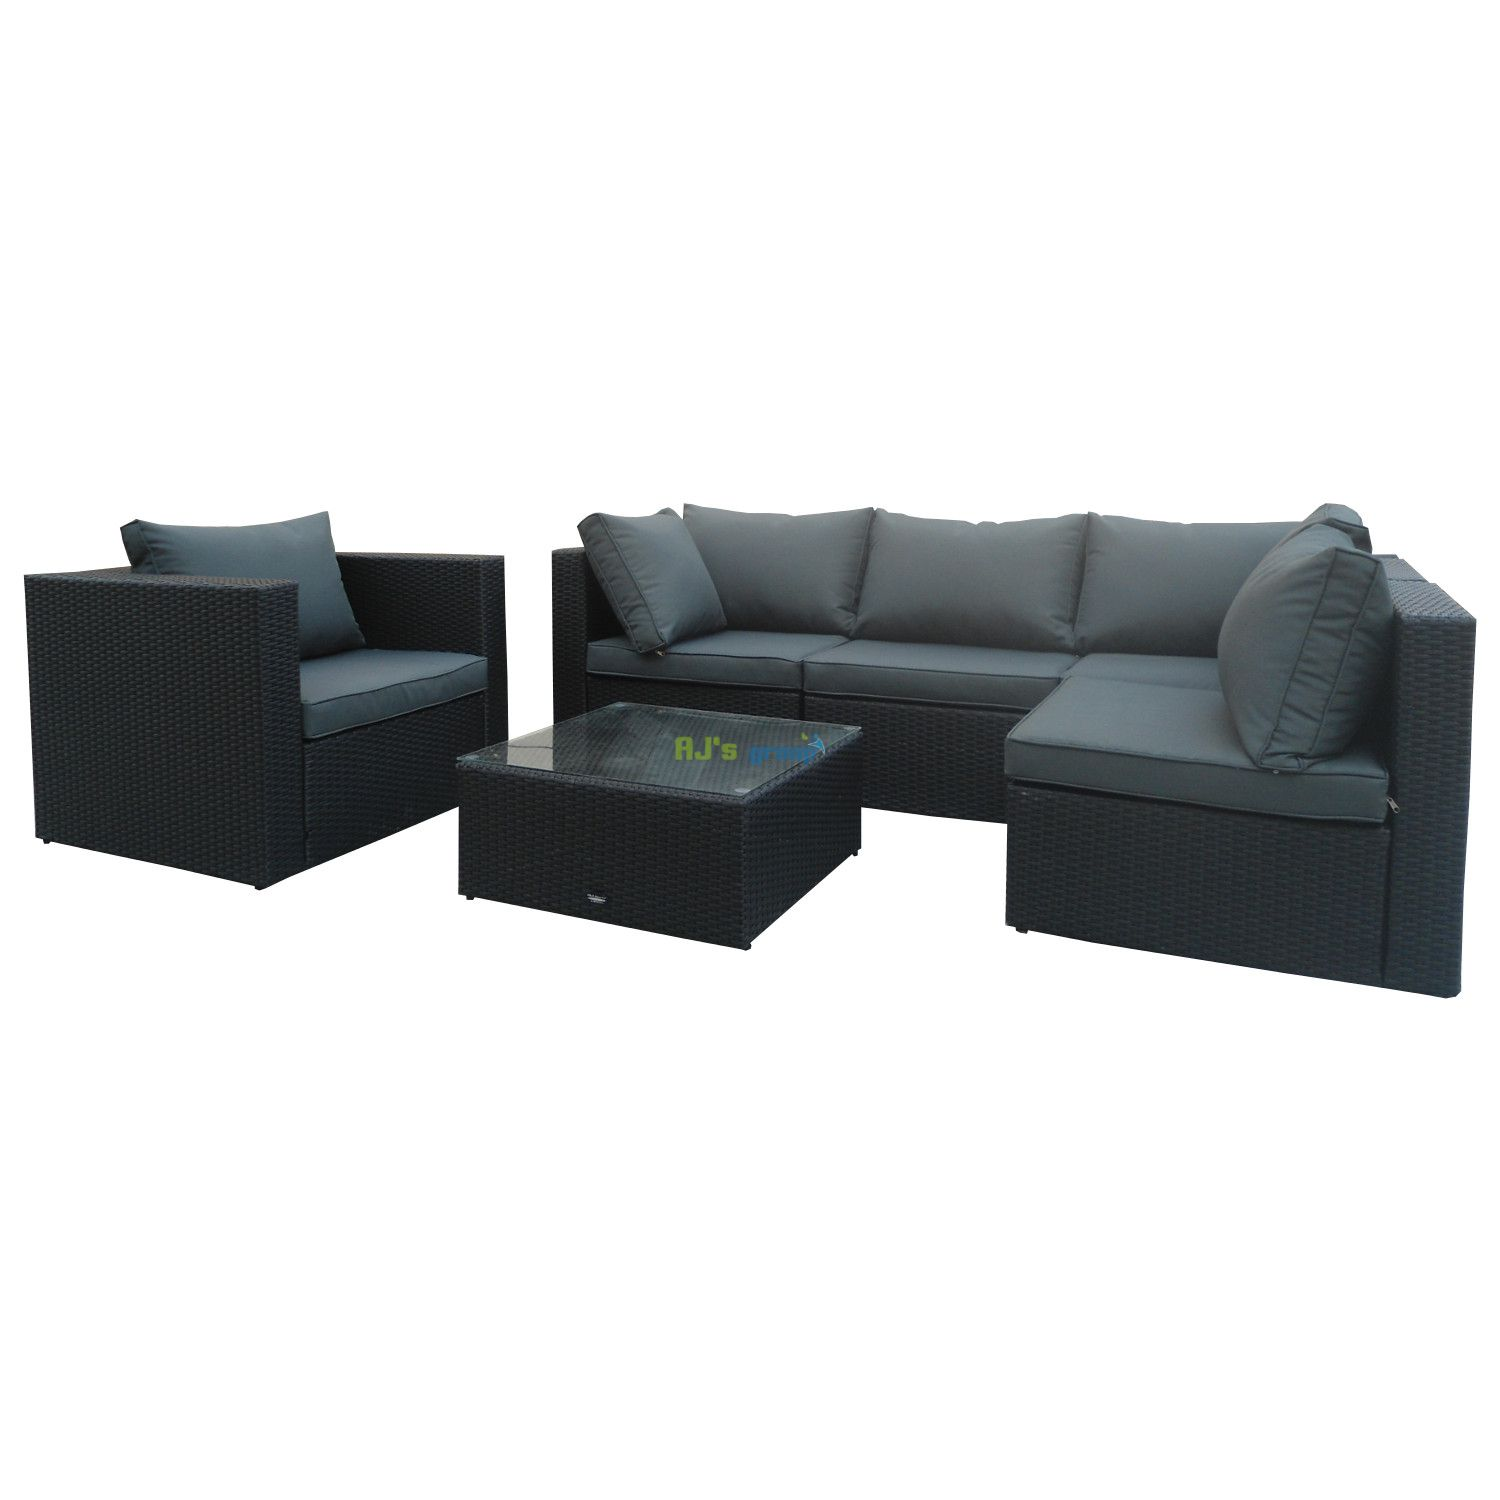 poly rattan gartenm bel jamaica alu garnitur lounge garten sitzgruppe gartenset. Black Bedroom Furniture Sets. Home Design Ideas